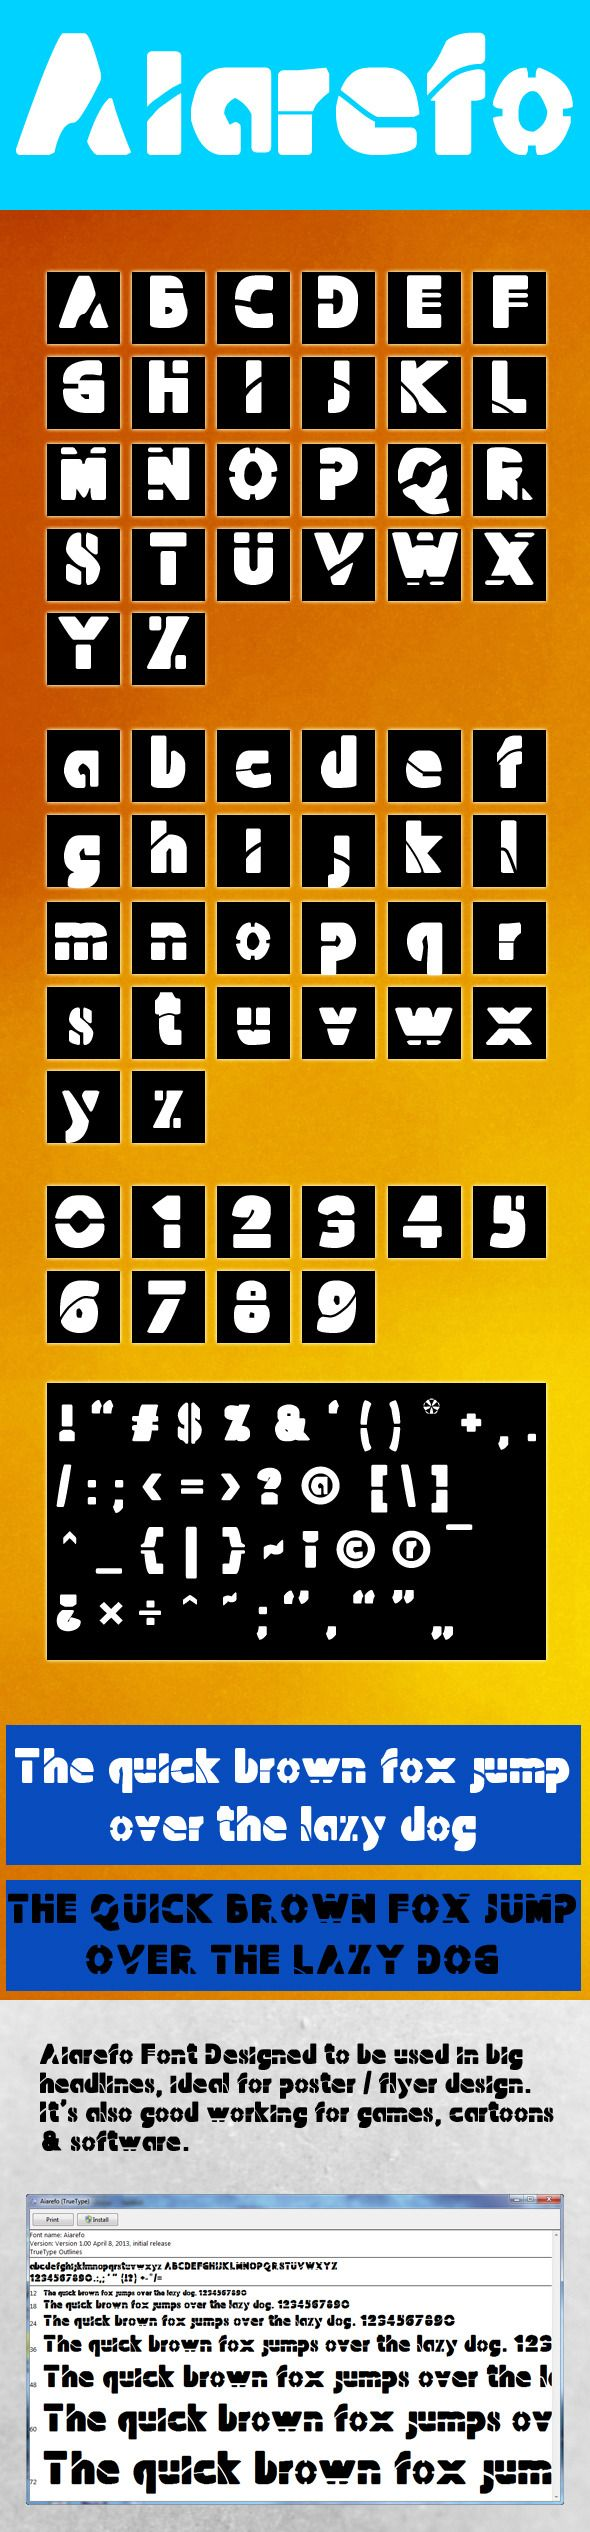 Poster design software for windows 8 1 - Aiarefo Font